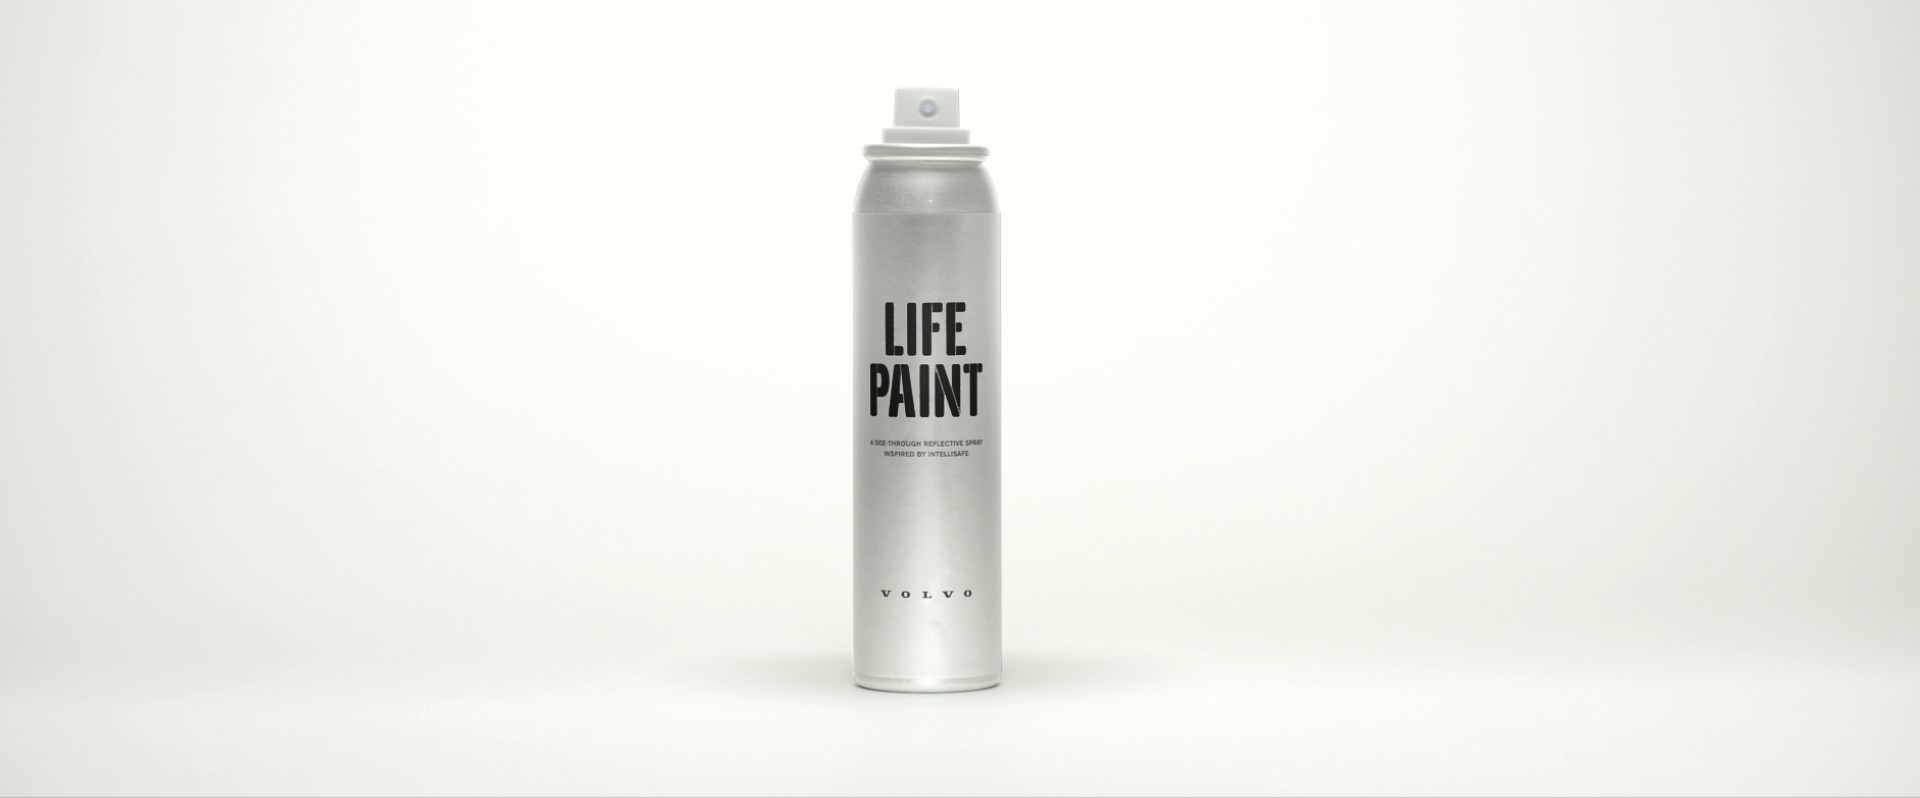 VOLVO CARS LIFEPAINT HELPS CYCLISTS BE SEEN WHEN SUMMERTIME ENDS